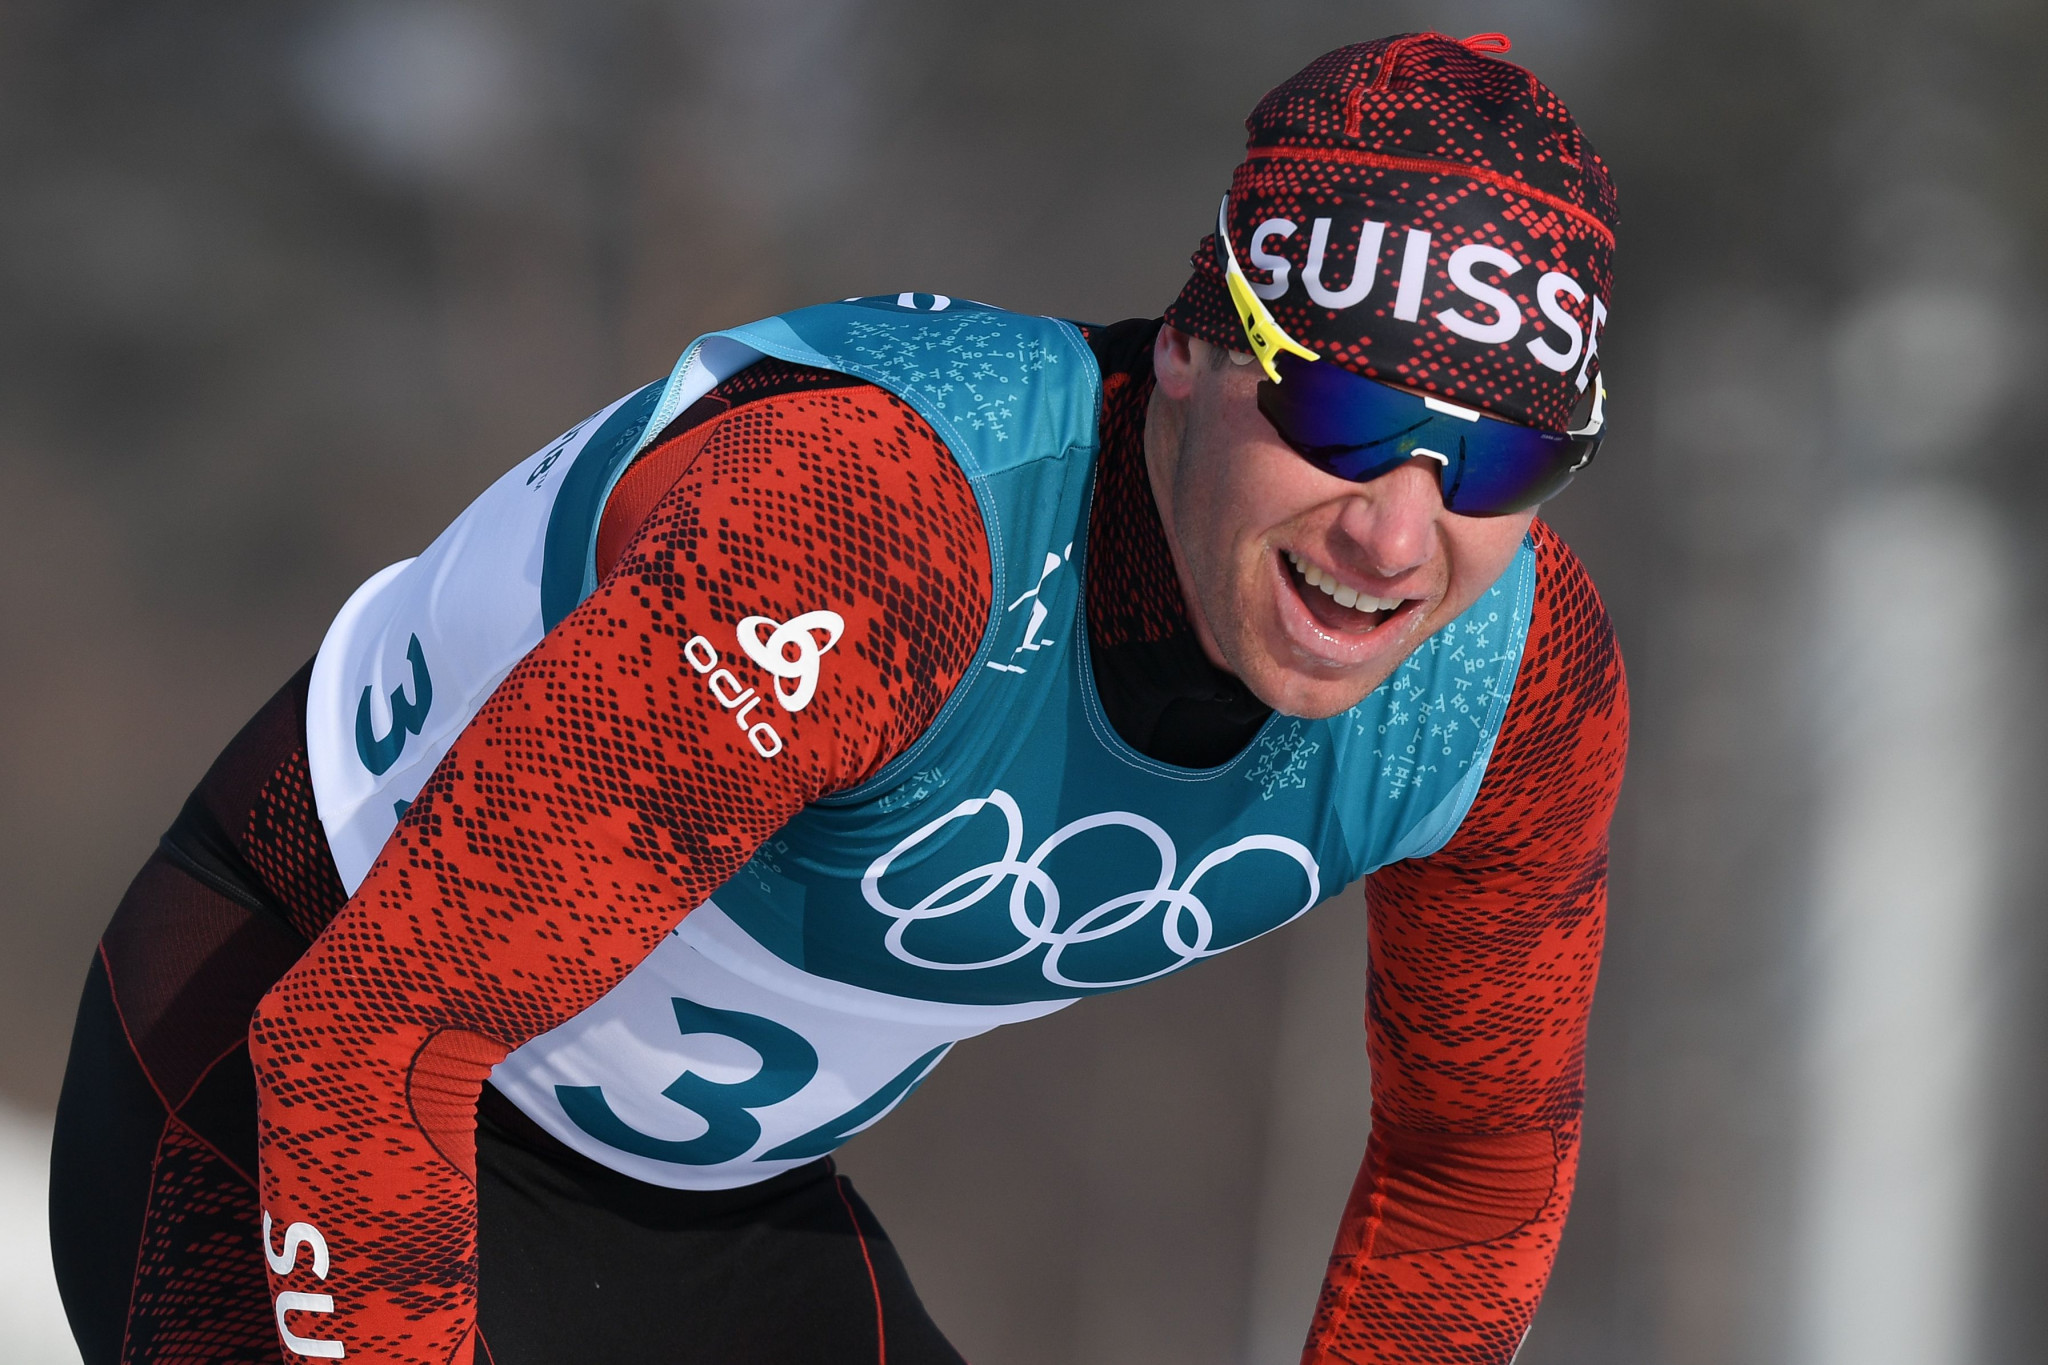 Toni Livers competed at four different Winter Olympics ©Getty Images